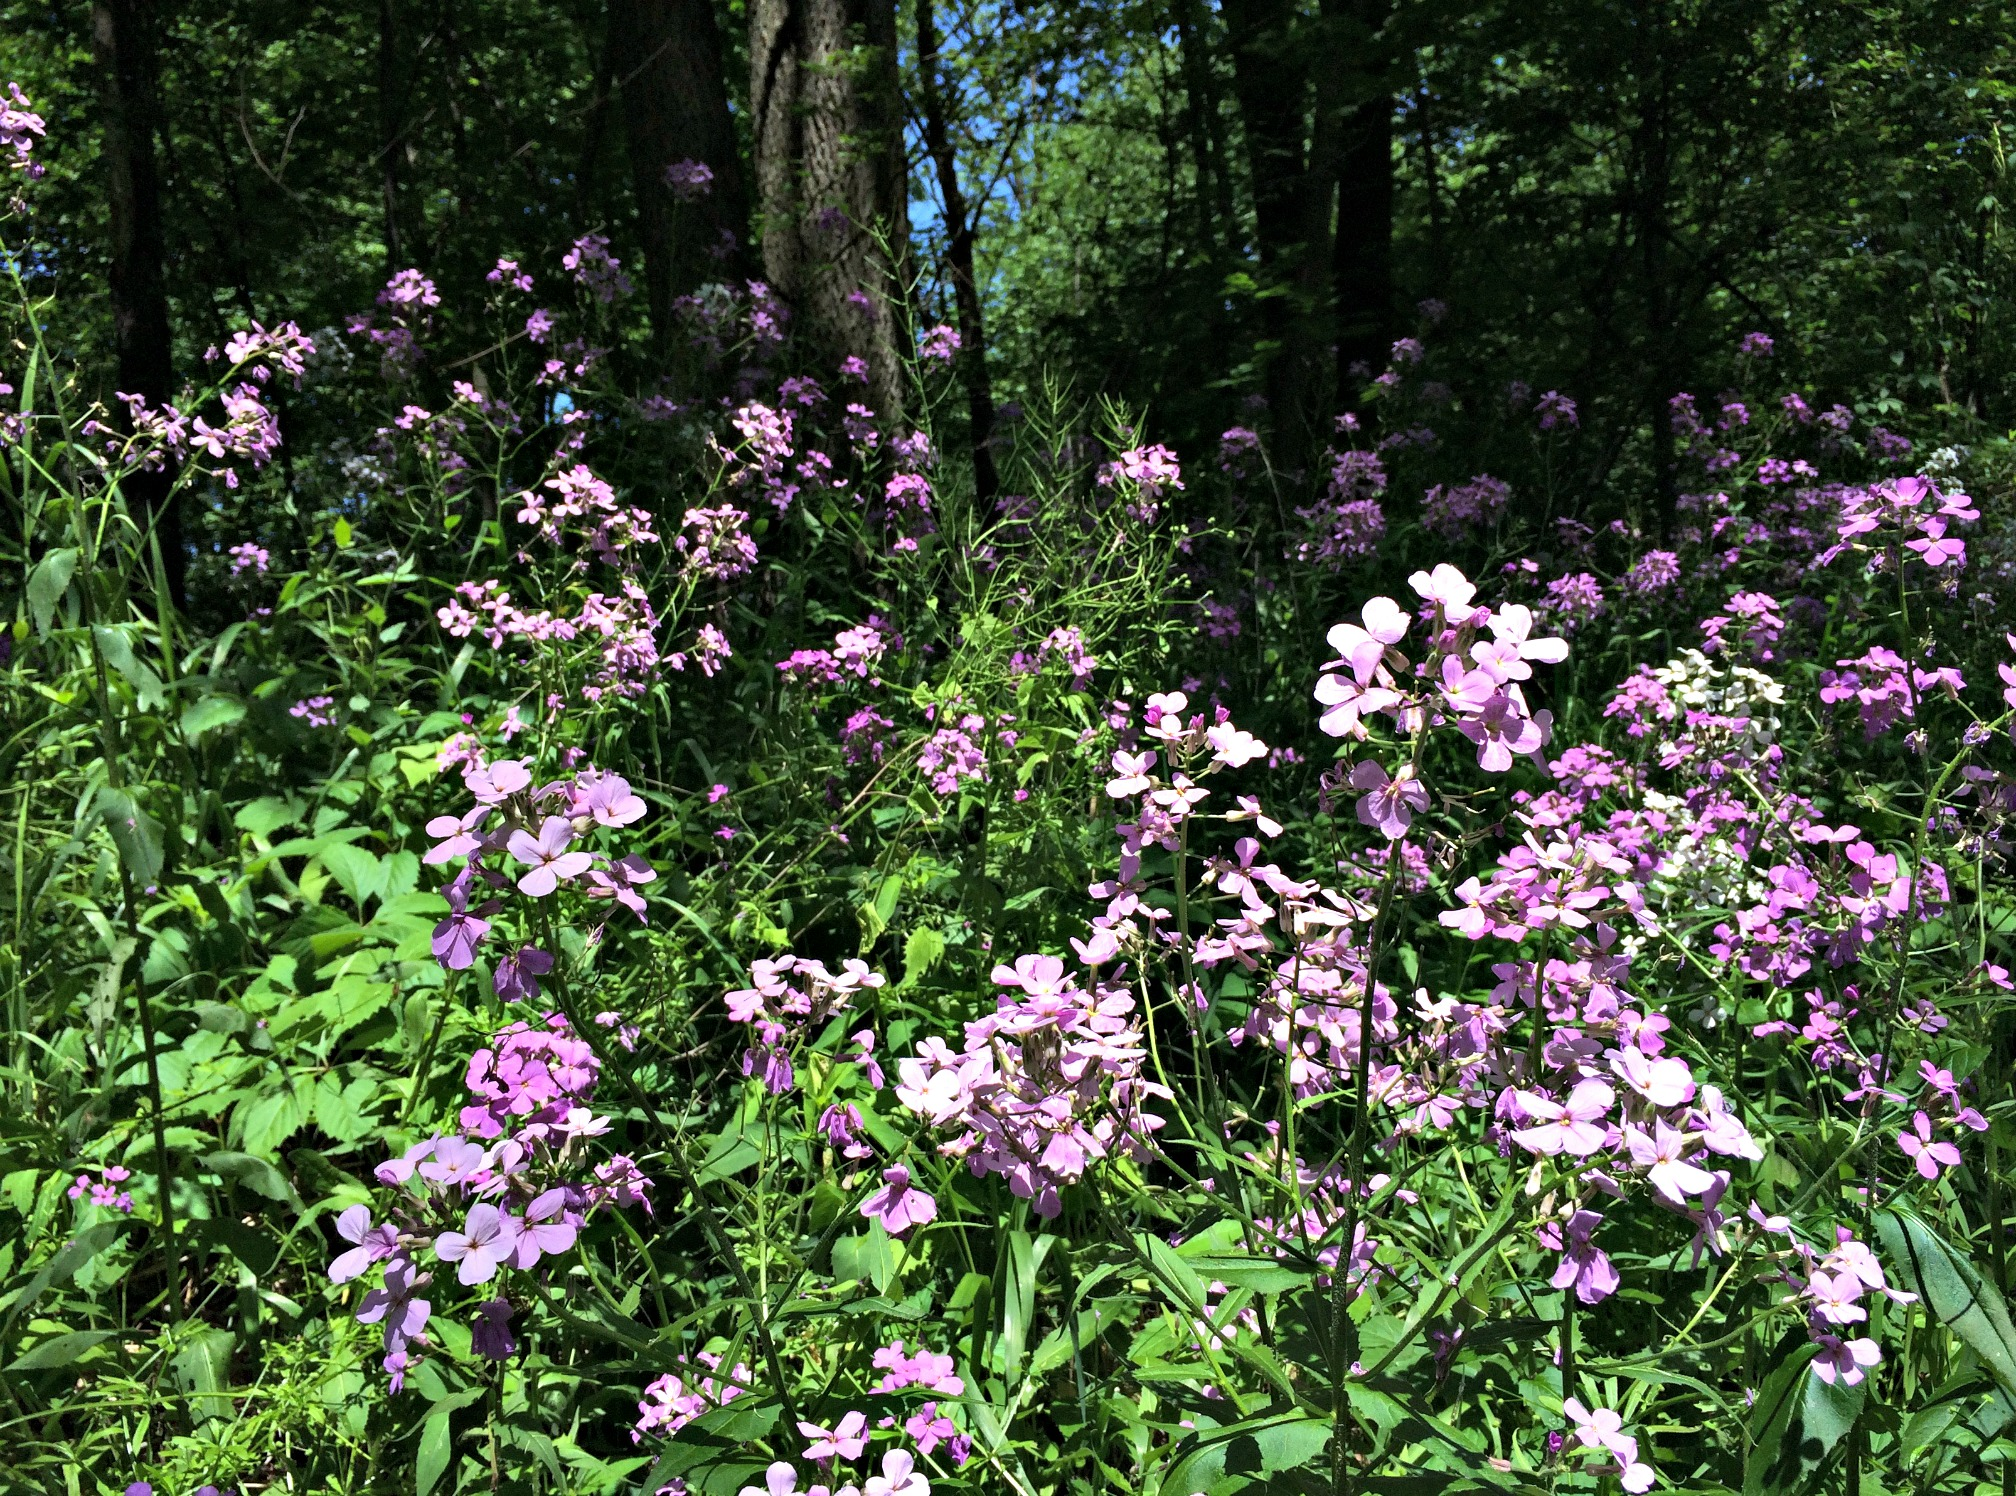 purple flowers on running trails